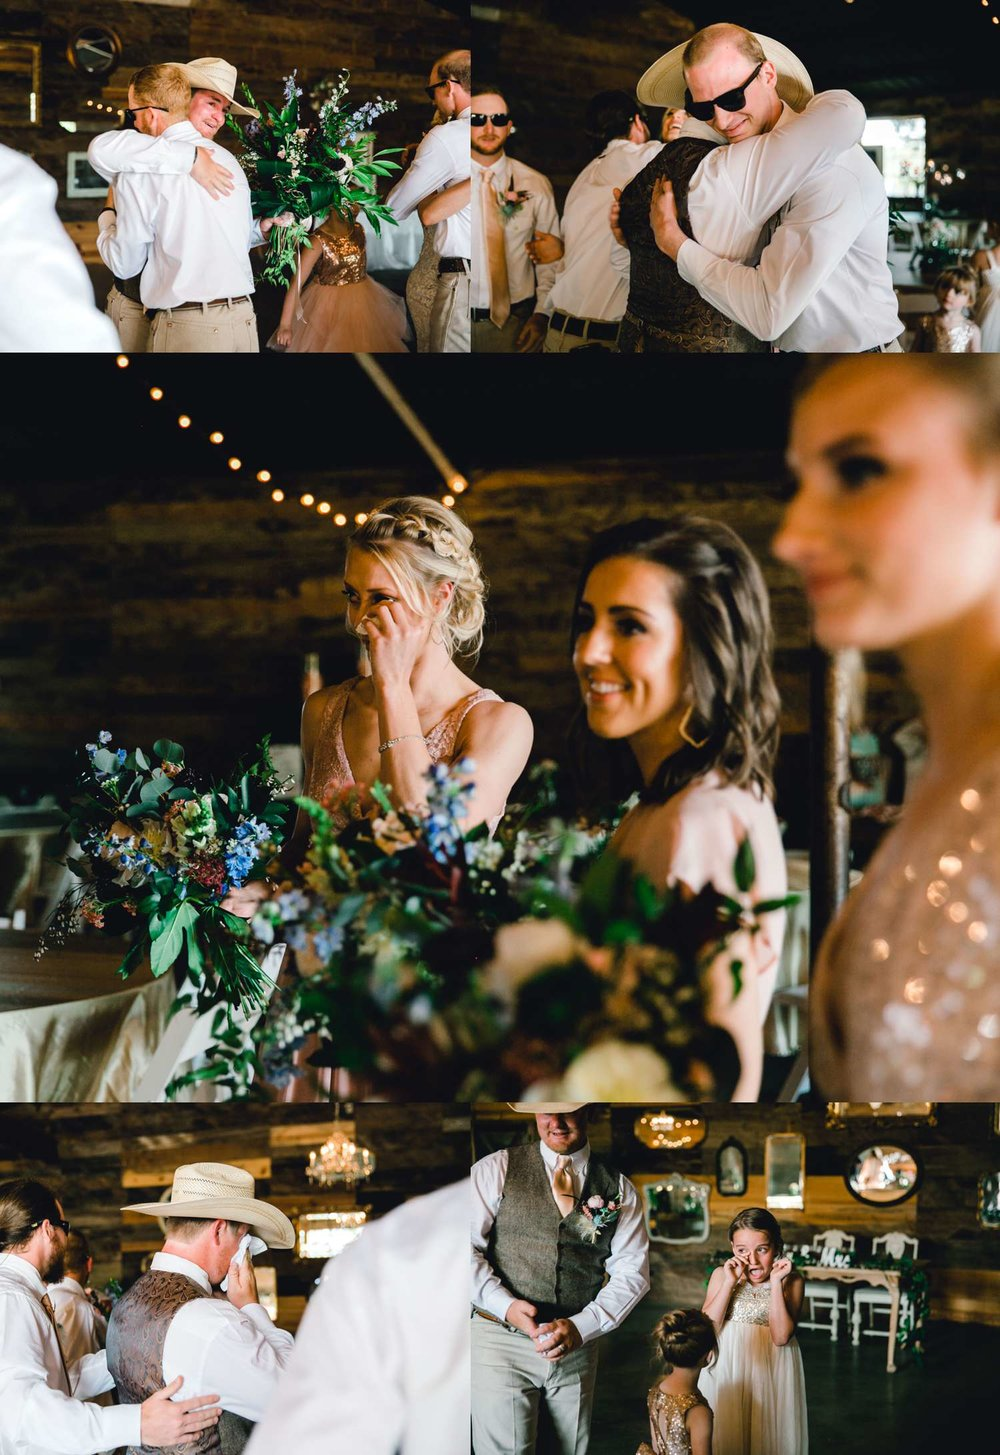 SARAH+TREVOR+BADGETT+SPARROW+CREEK+GRAHAM+TEXAS+ALLEEJ+WEDDINGS_0080.jpg